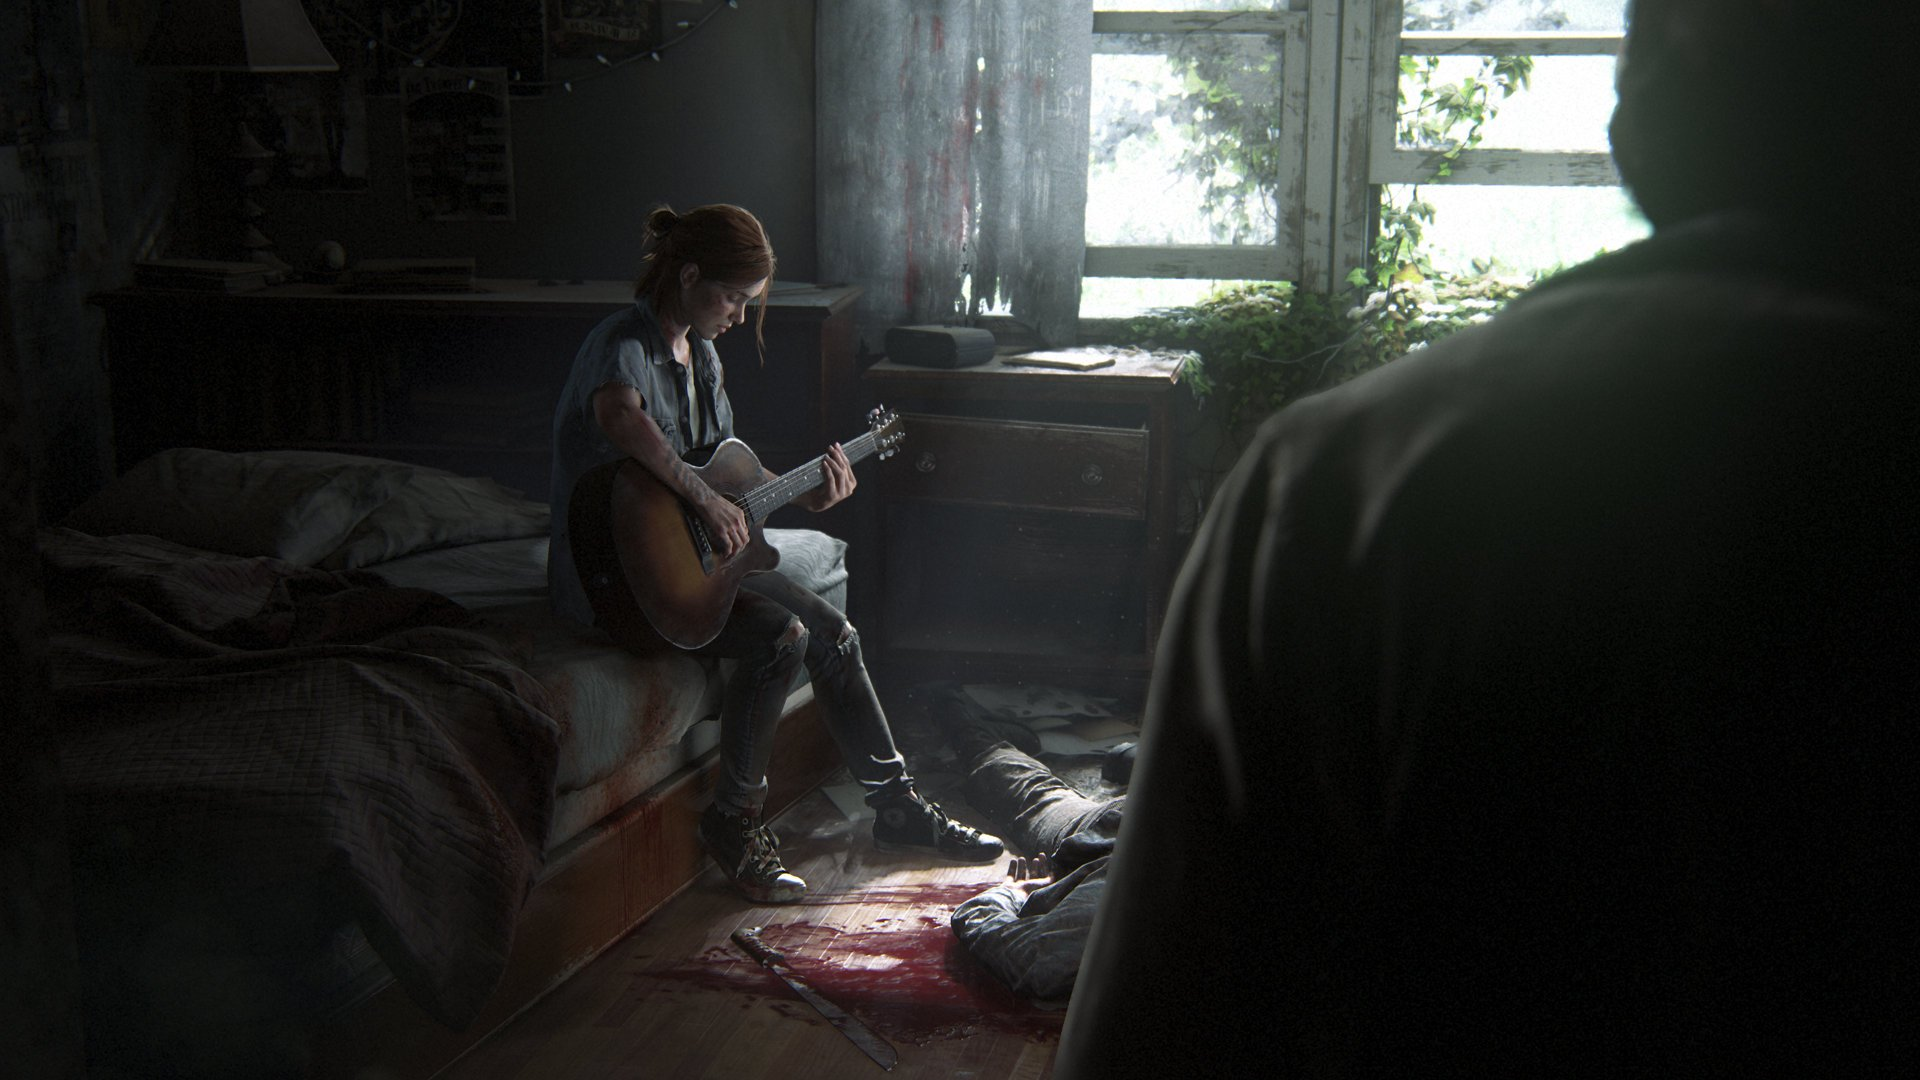 The Last of Us 2 - Leaked The Last of Us Part II Footage Features Guitar Simulator Minigame